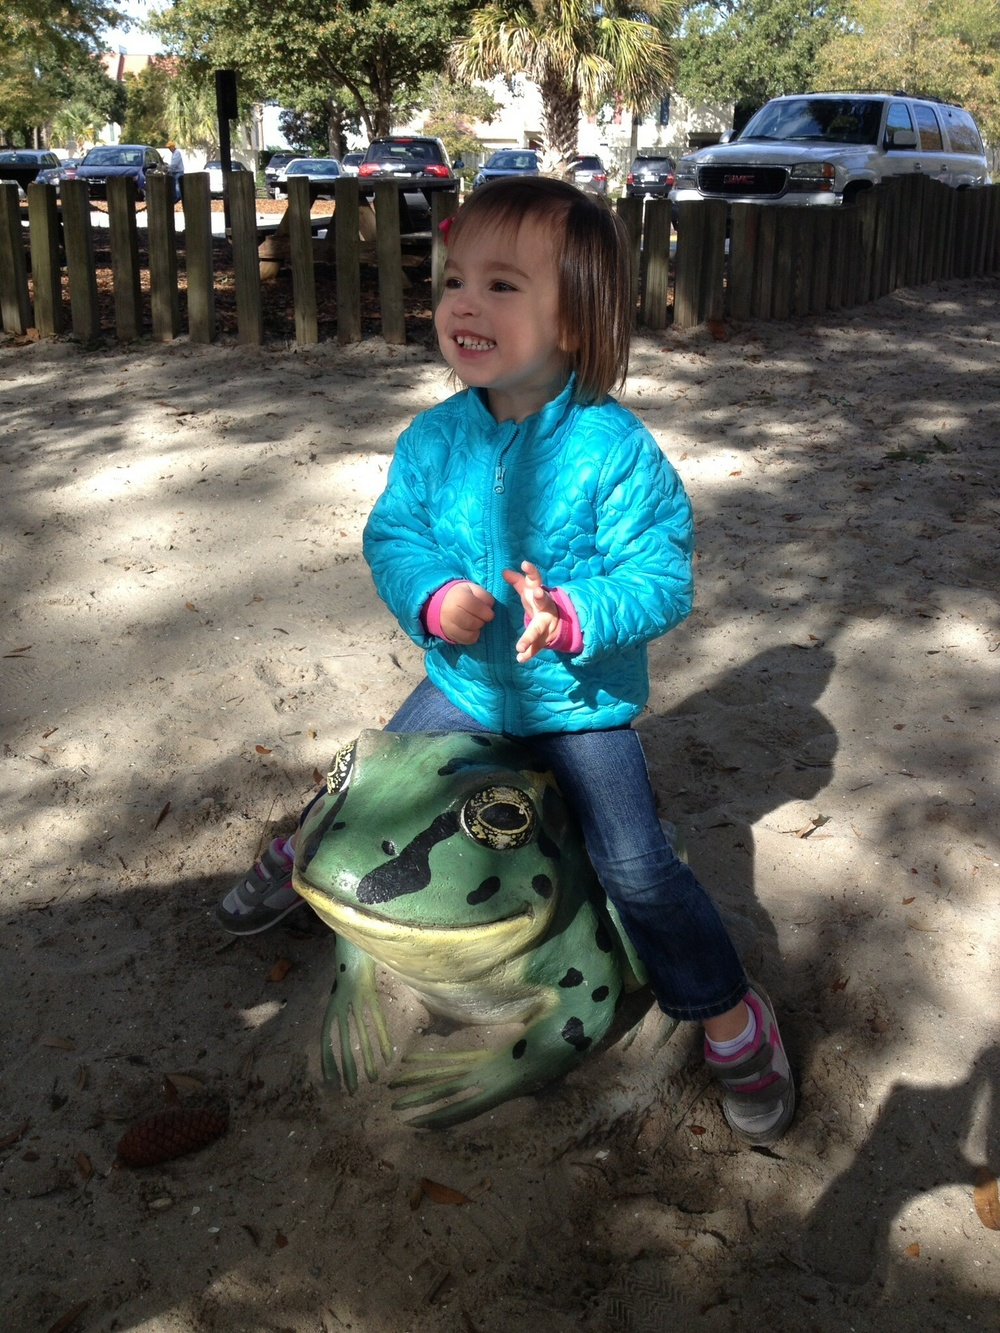 Riding the turtle at the playground in Harbor Town. No trip to Hilton Head is complete without a trip to Harbor Town.